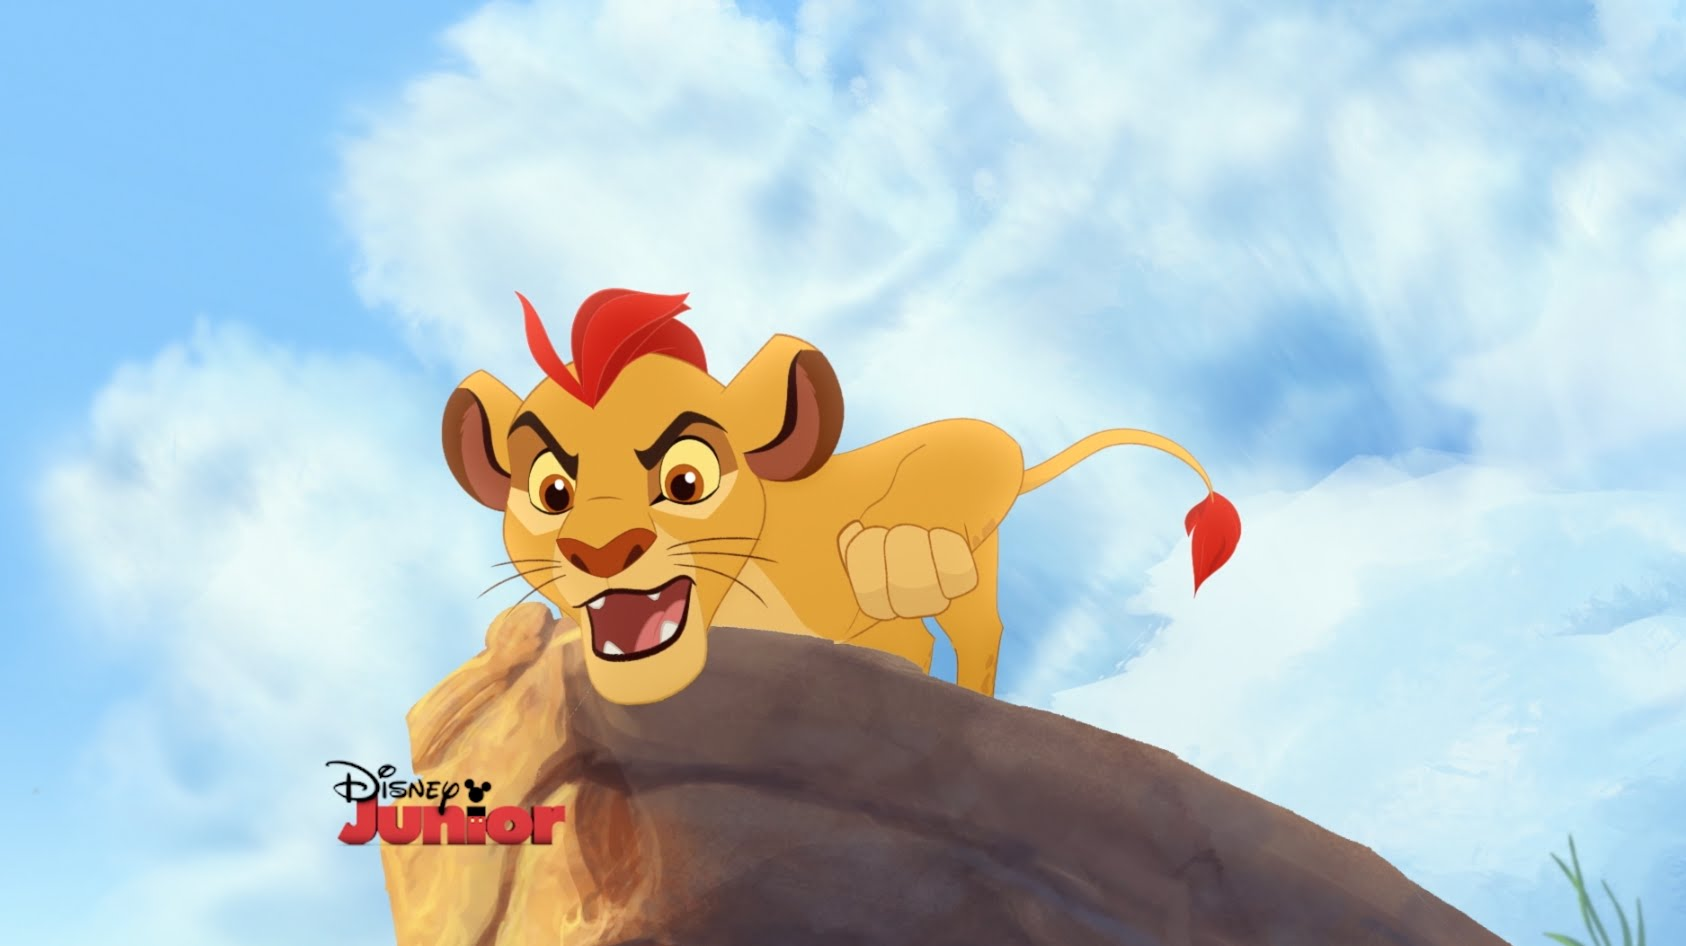 The Lion Guard Disney S Upcoming Series To Follow The Lion King Mxdwn Television